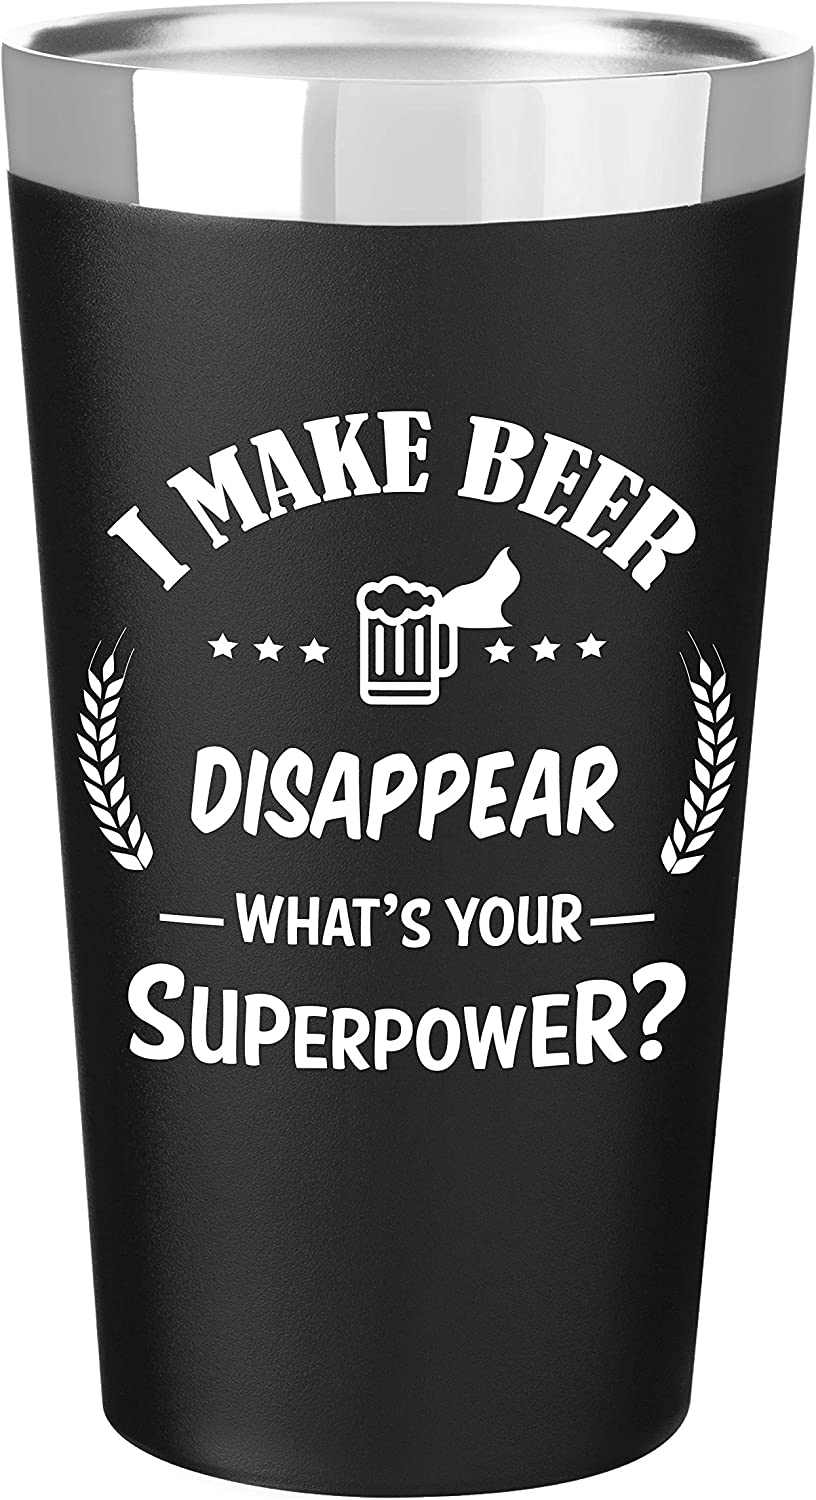 Ink Splash Promos Stainless Steel Beer Tumbler | Double Wall Vacuum Insulated | 16.9Oz Beer Mug with Funny Saying | Sweat-Free, BPA-Free Pint Glass | Gift Idea for Men & Women (Matte Black)